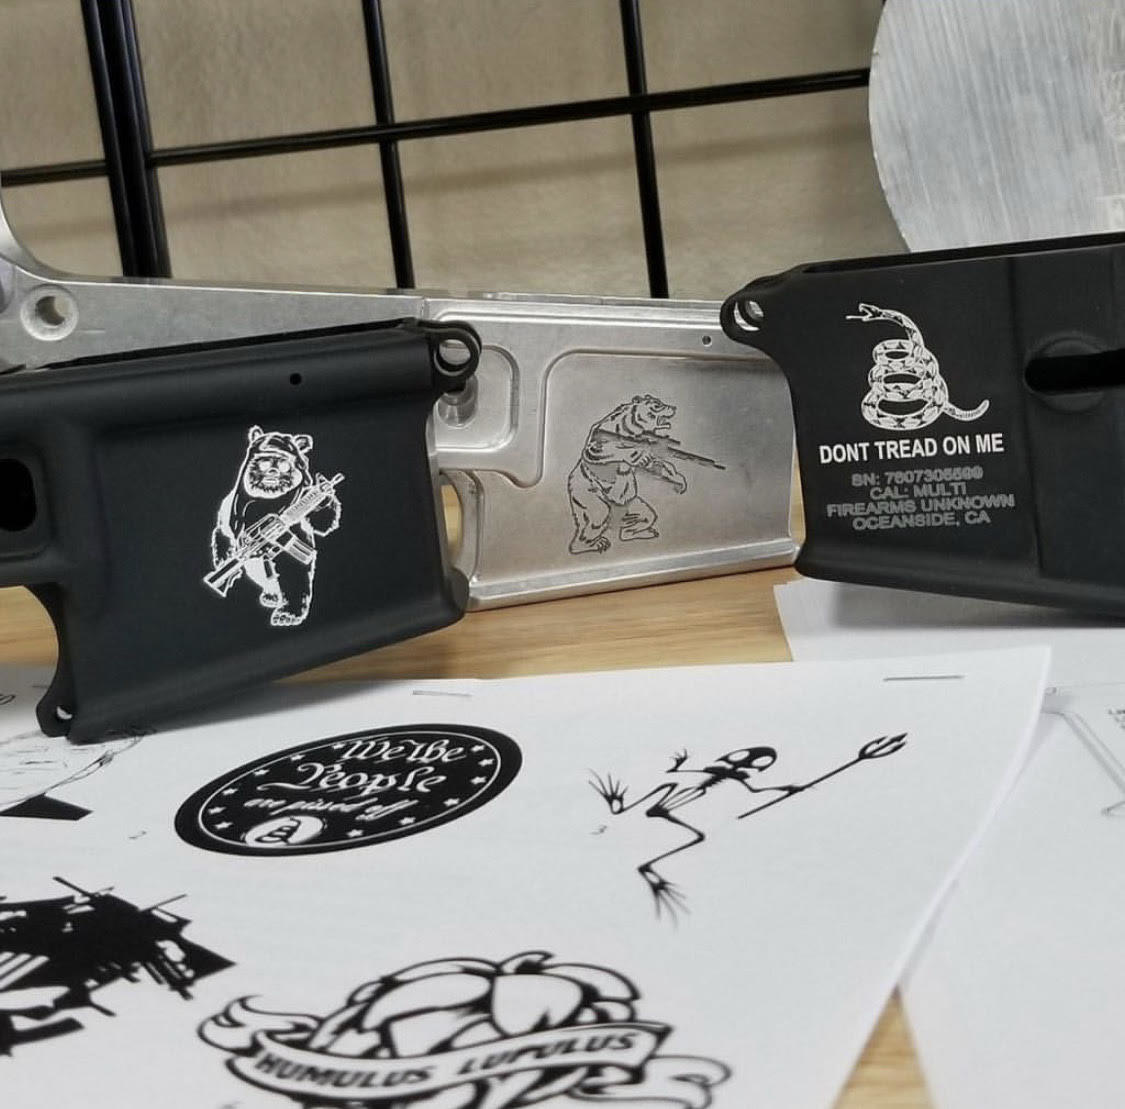 Armorer's Work and Laser Engraving